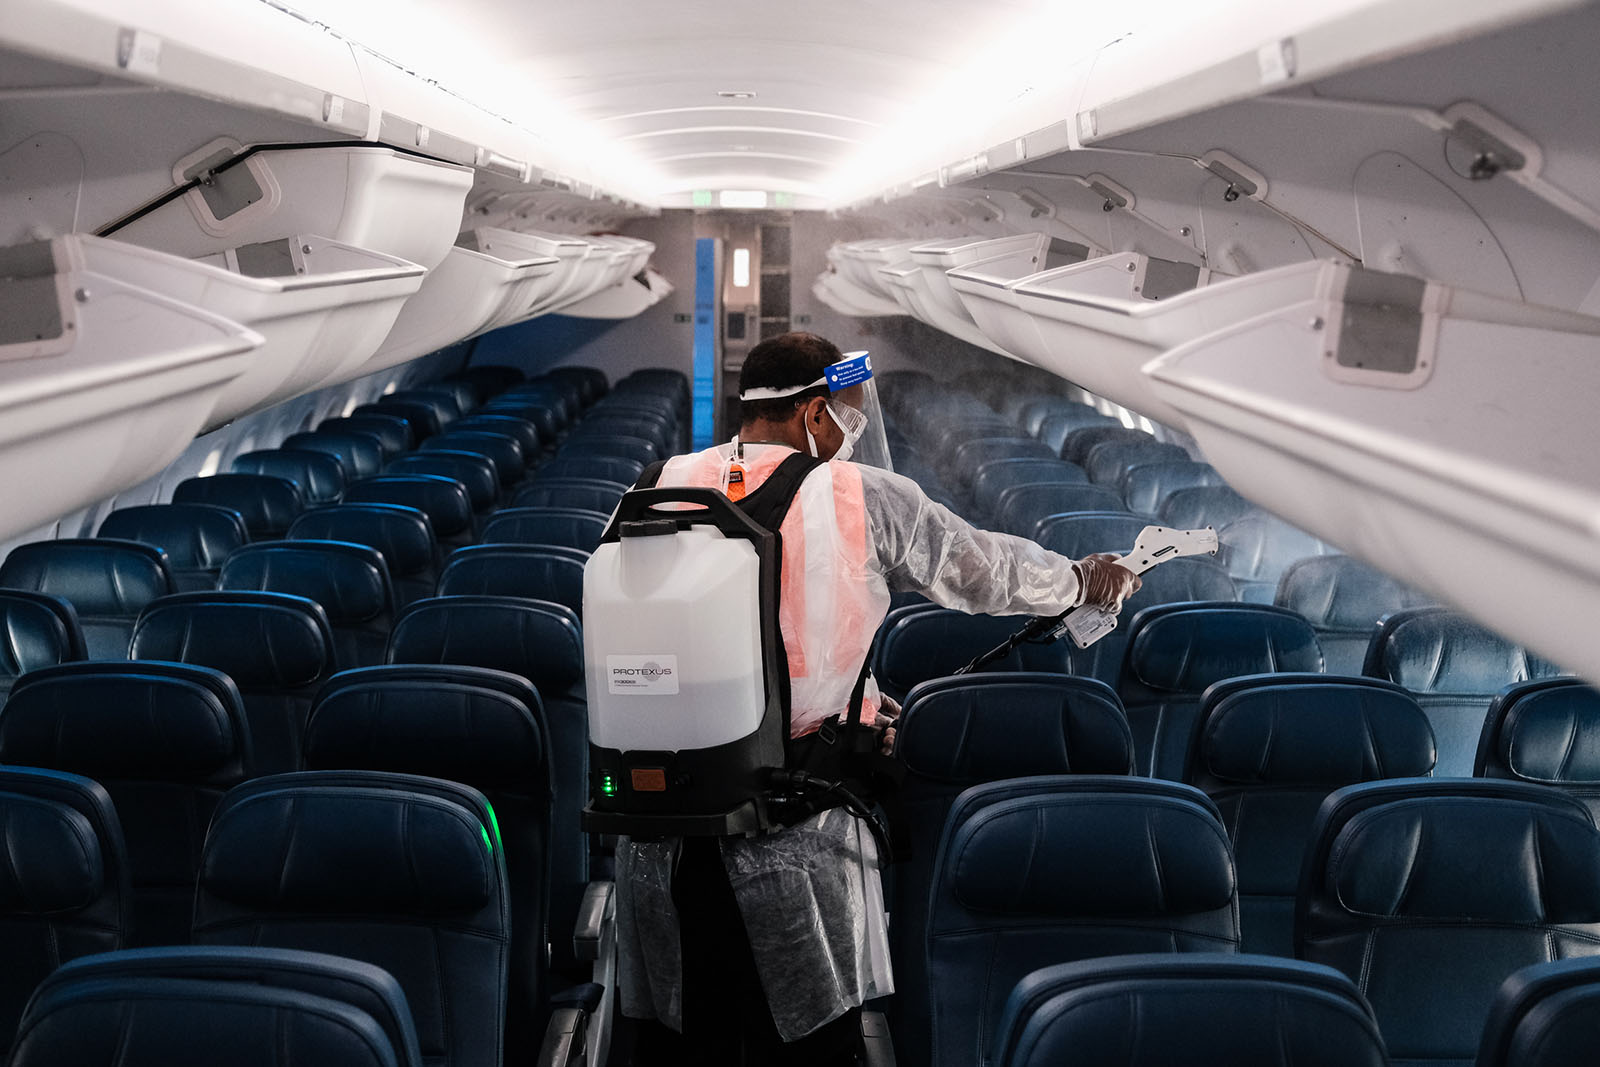 A airport employee performs an aircraft disinfecting demonstration during a media preview at the Ronald Reagan National Airport on July 22, in Arlington, Virginia.